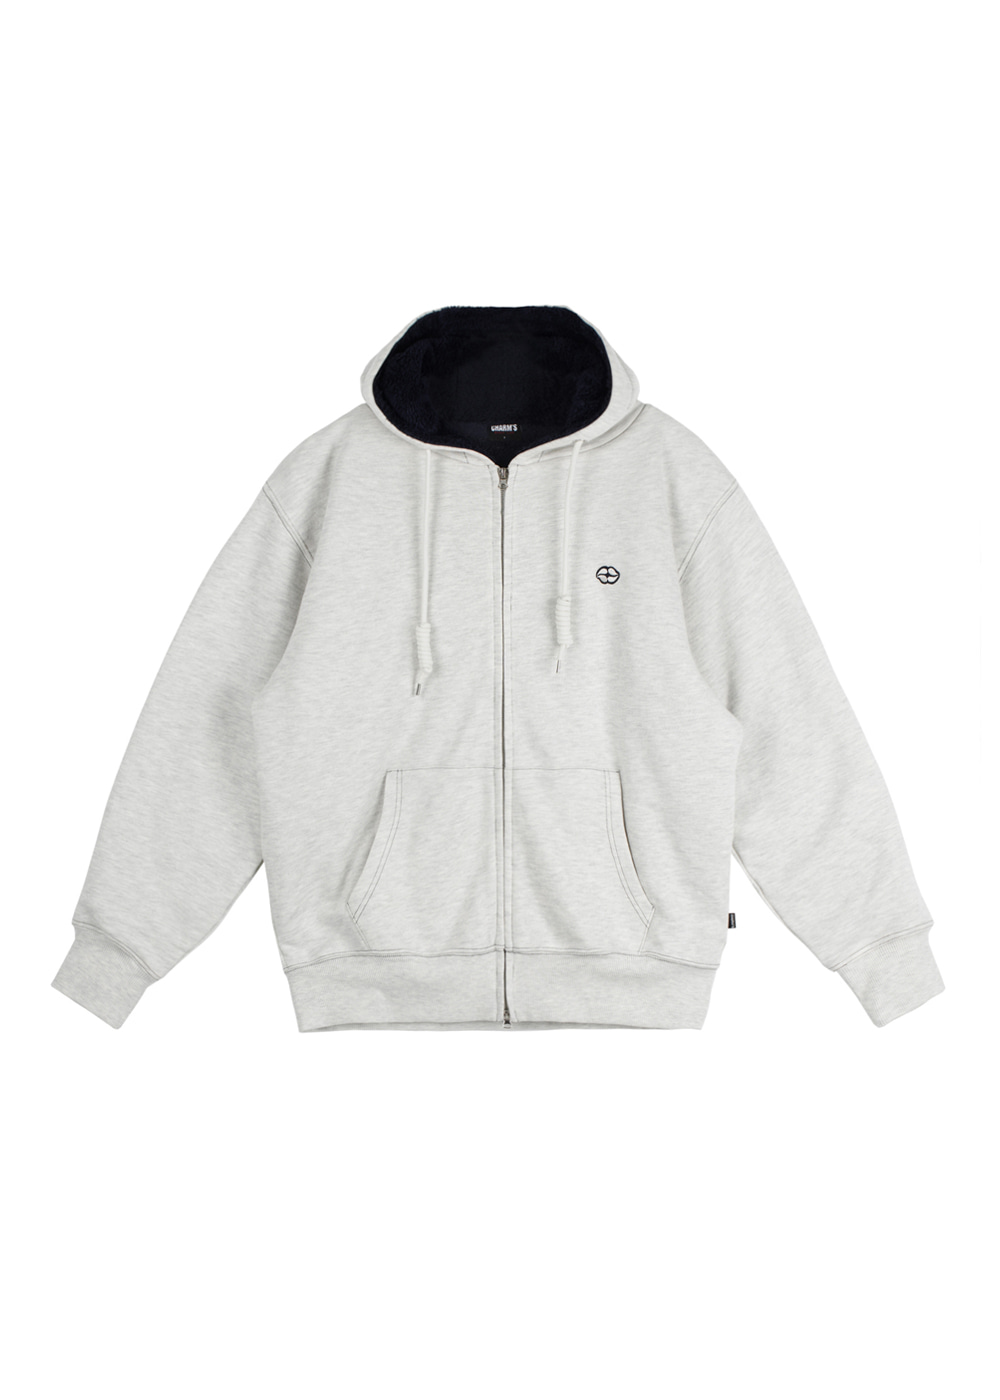 CHARMS HEART LIP ZIP UP HOODIE IV